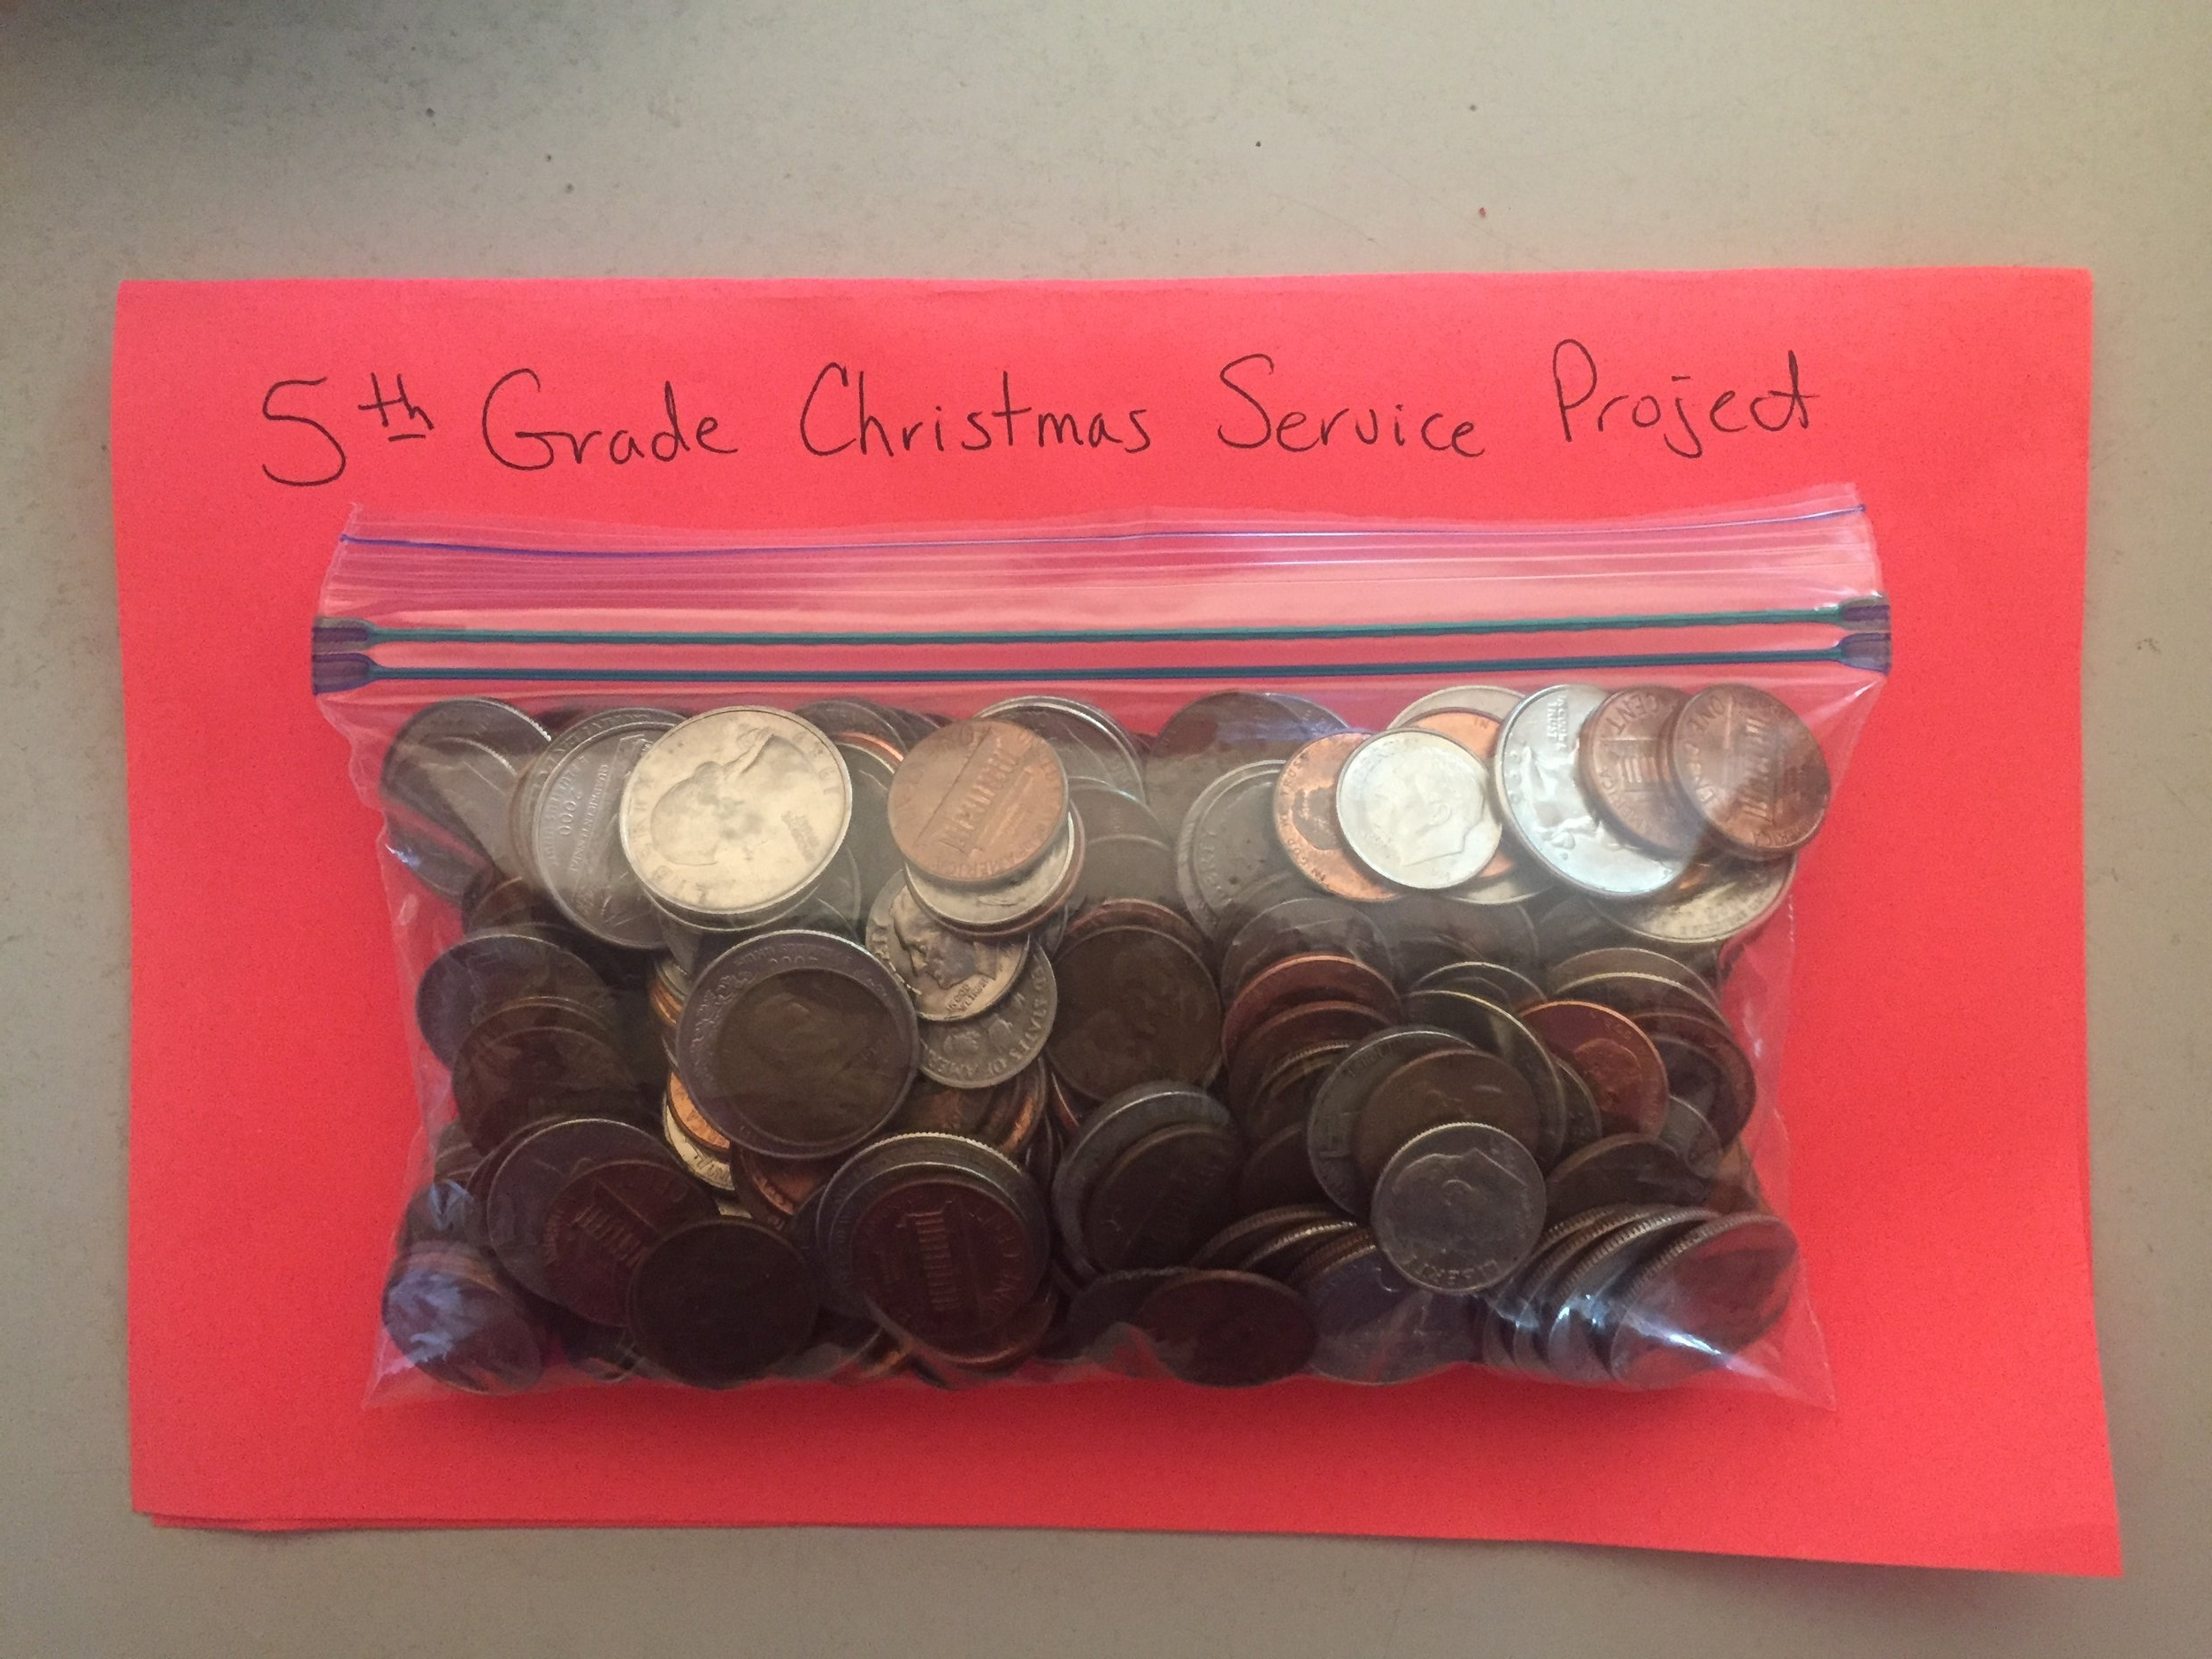 Day 24: Put your loose change in a charity box.